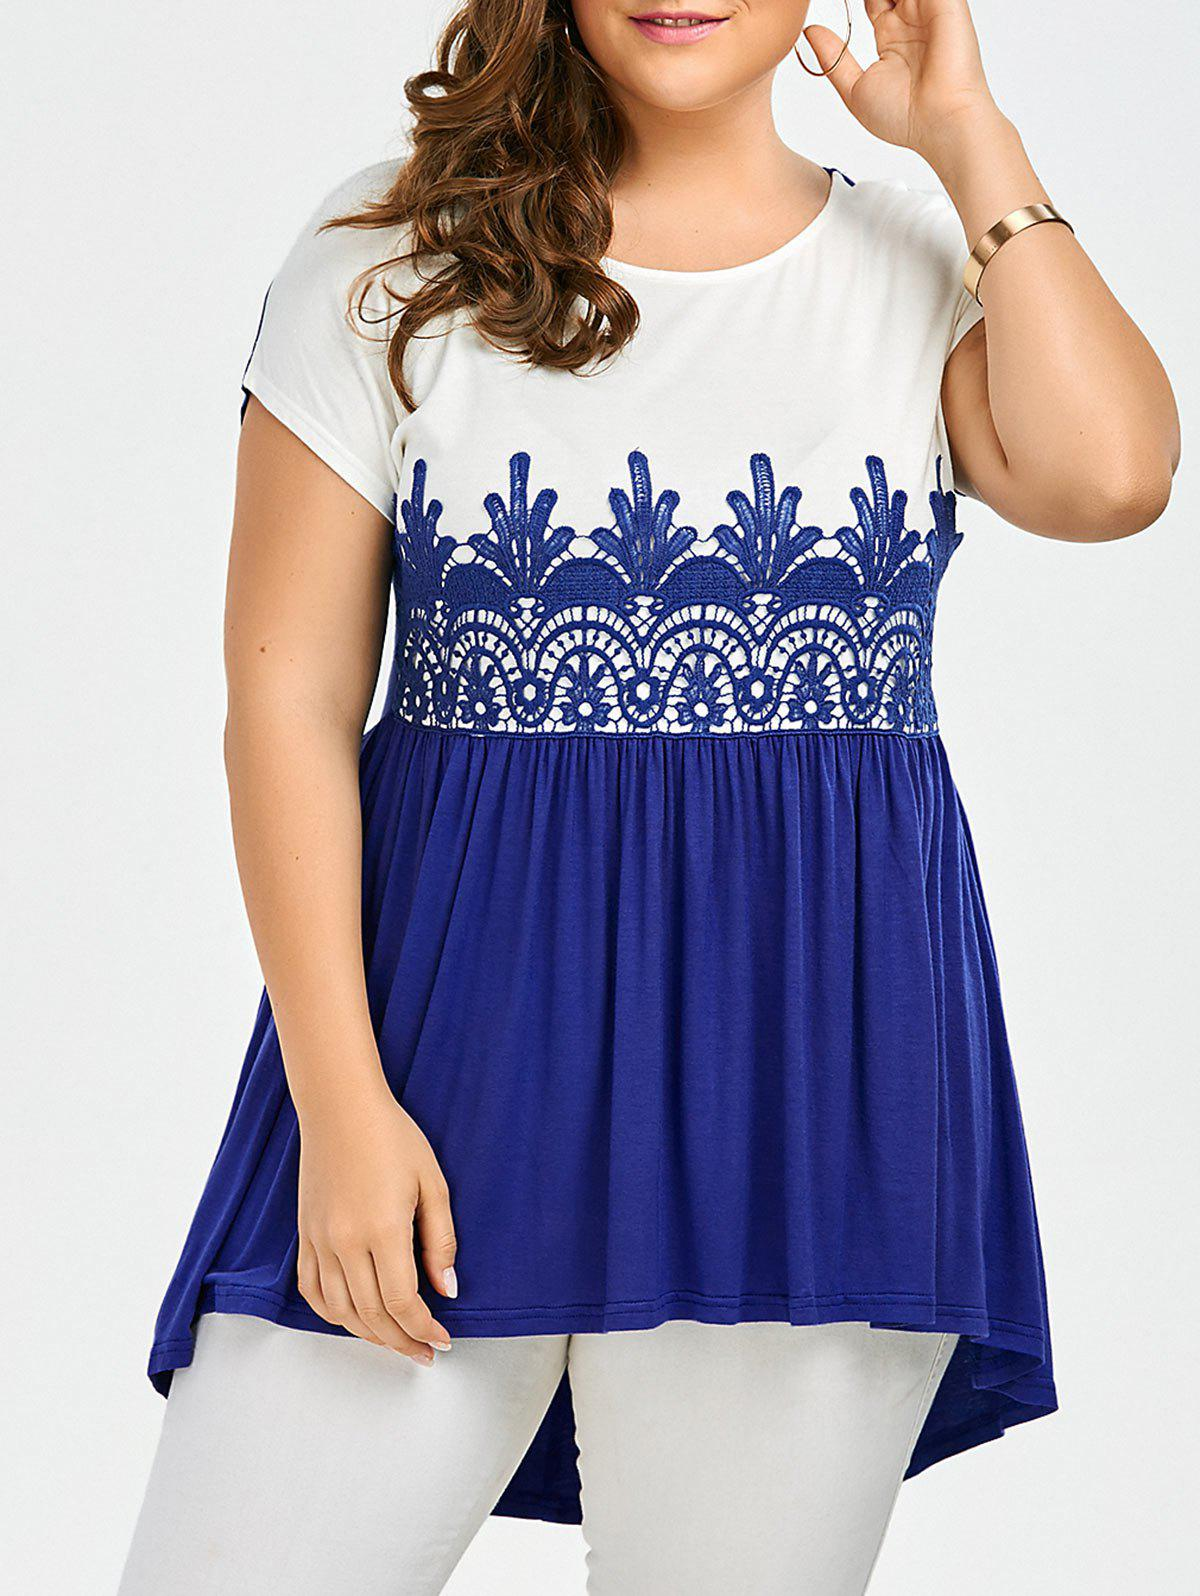 Lace Insert Plus Size High Low Top - BLUE/WHITE 5XL